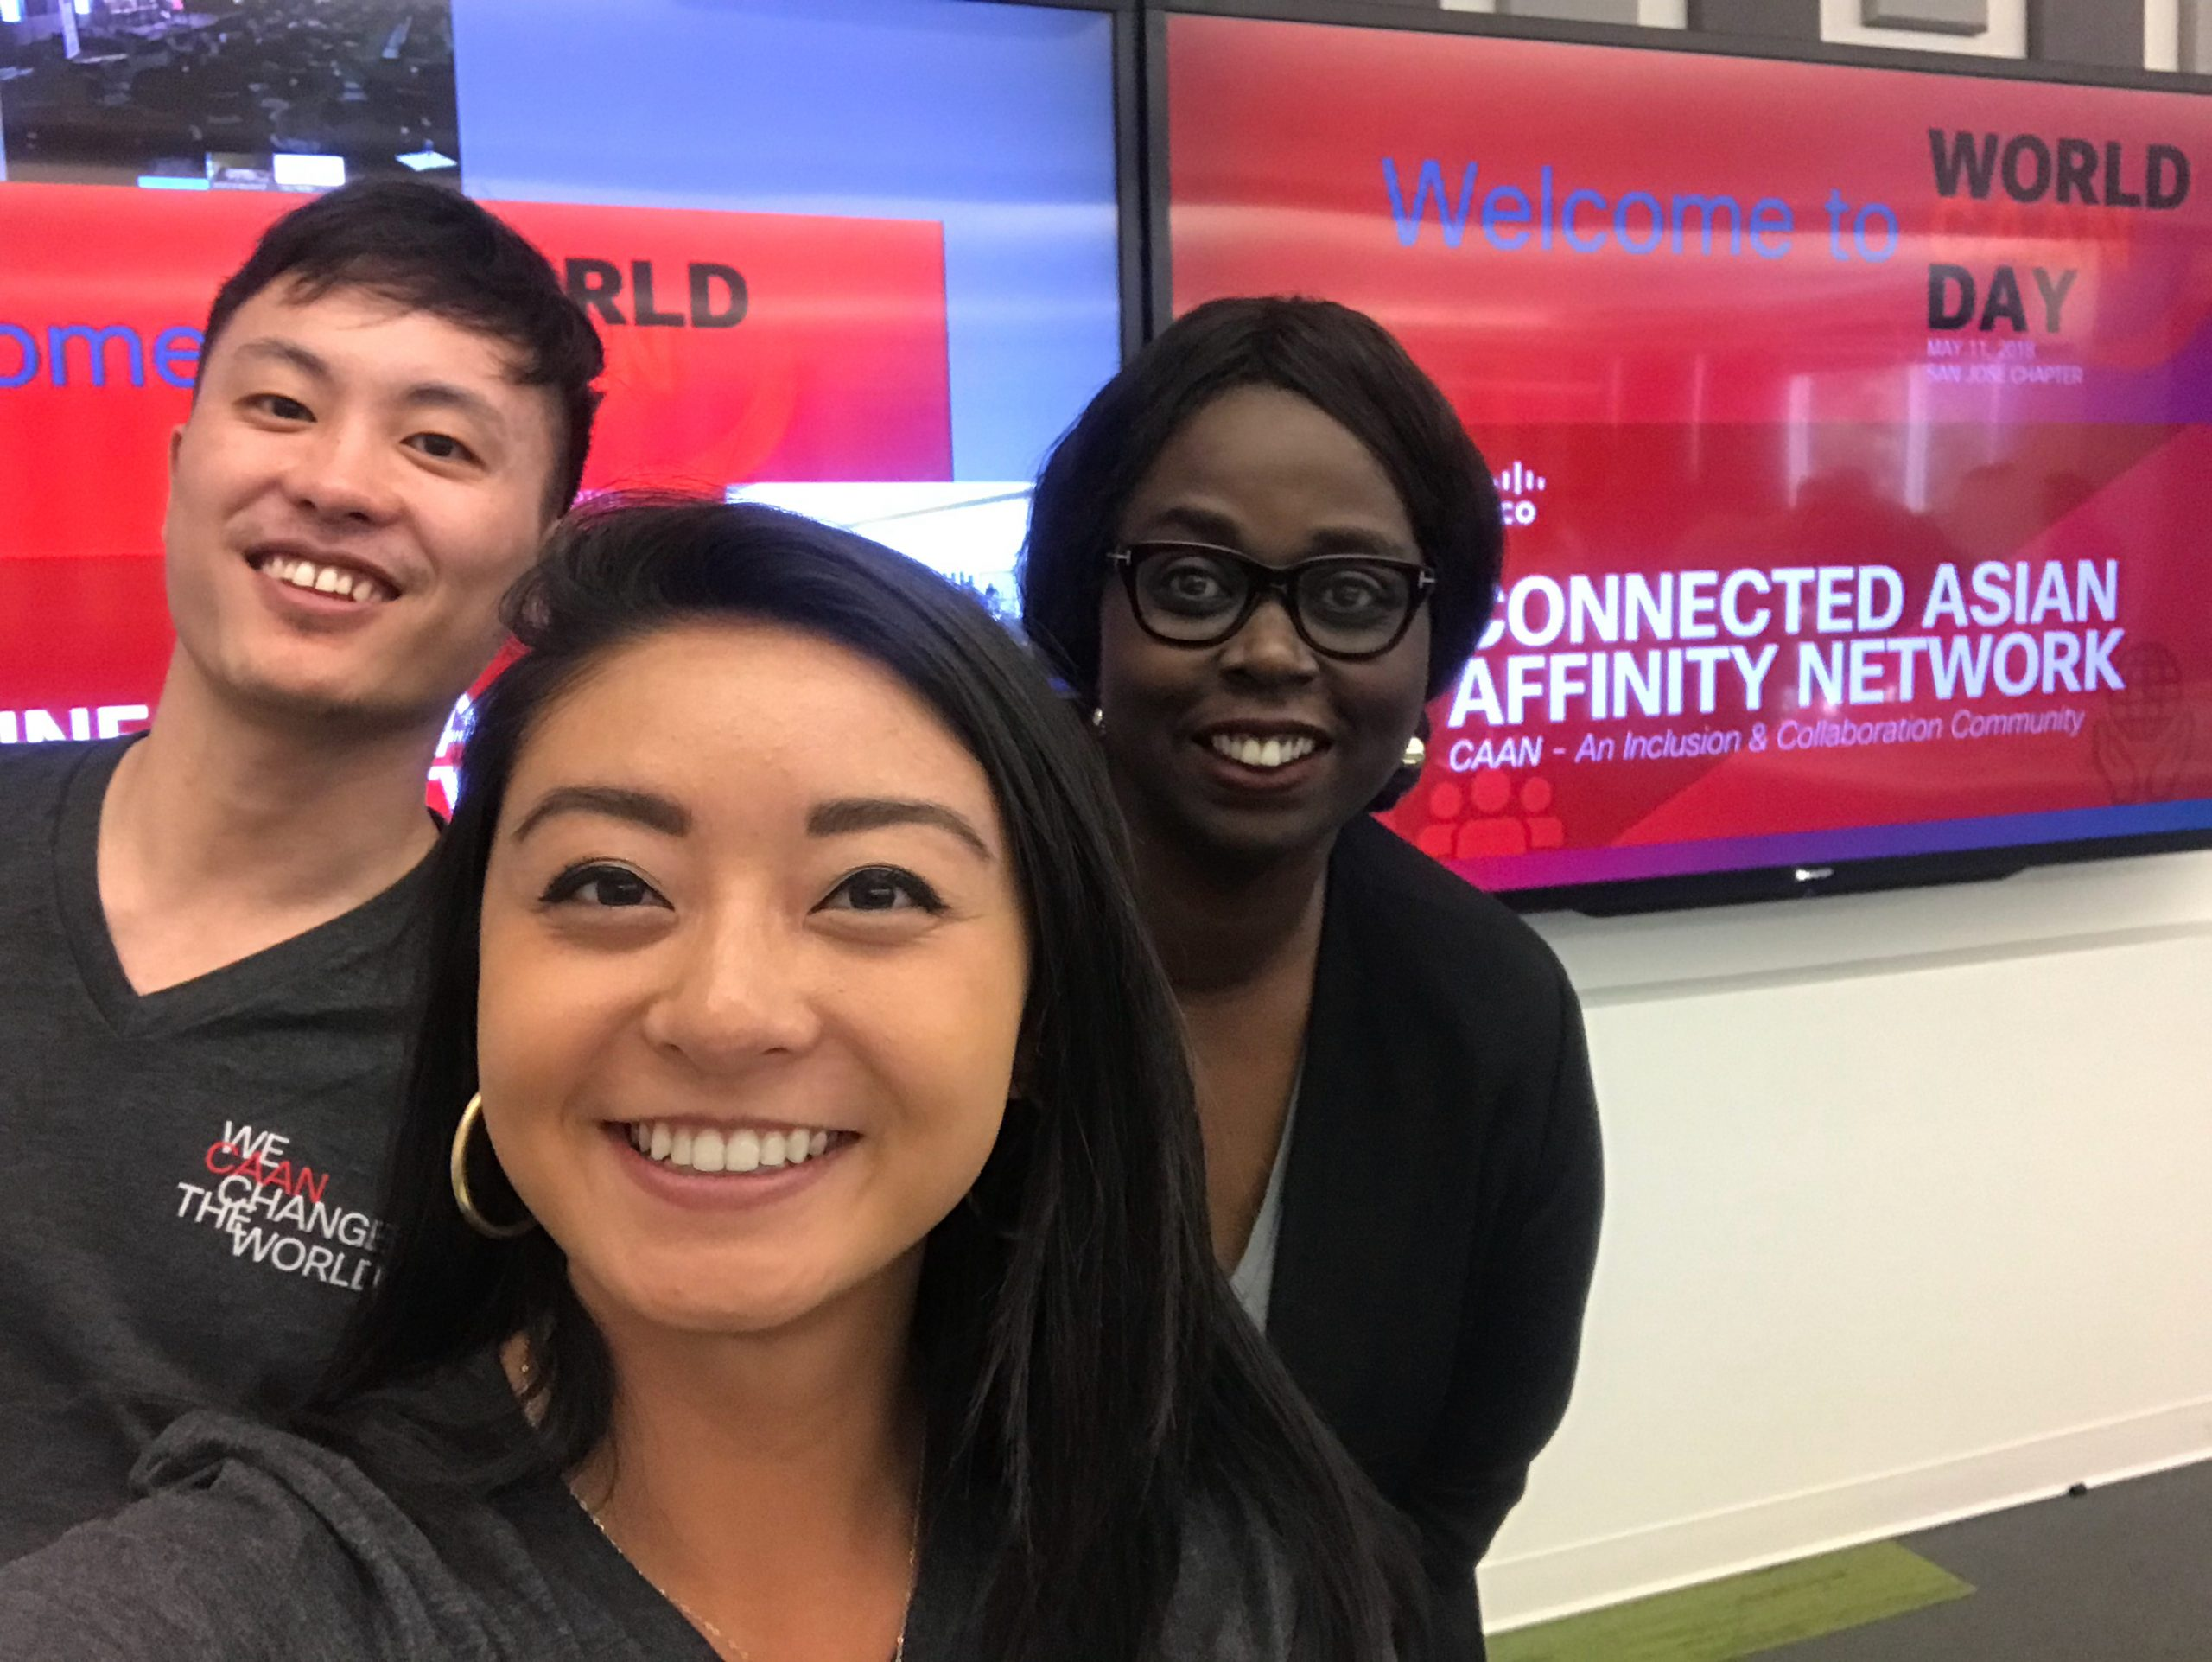 Melissa smiles with two of her peers in front of two tv's with the Connected Asian Affinity Network logo displayed.